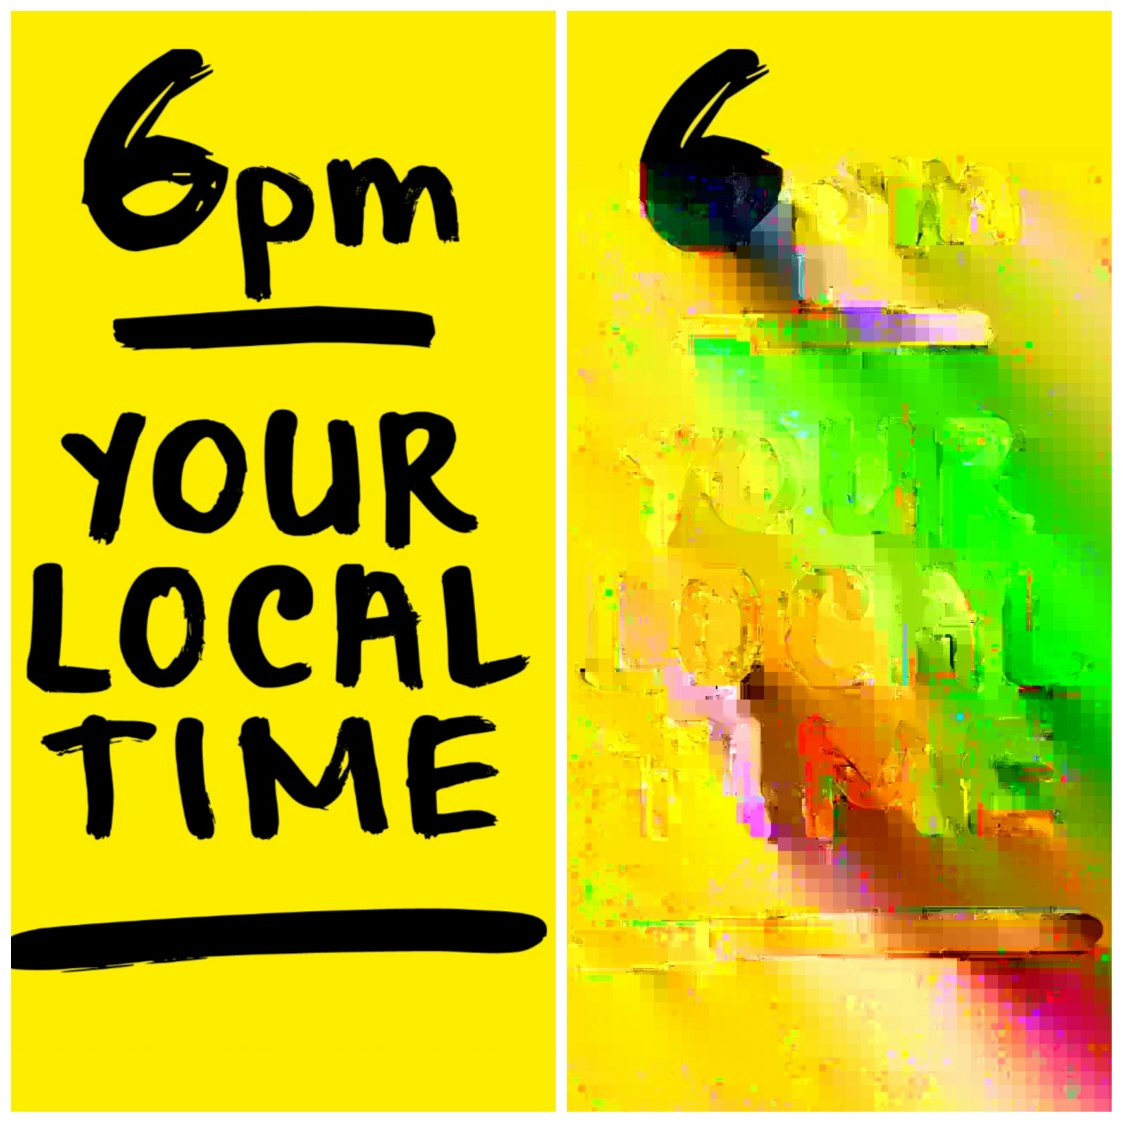 6PM YOURLOCALTIME